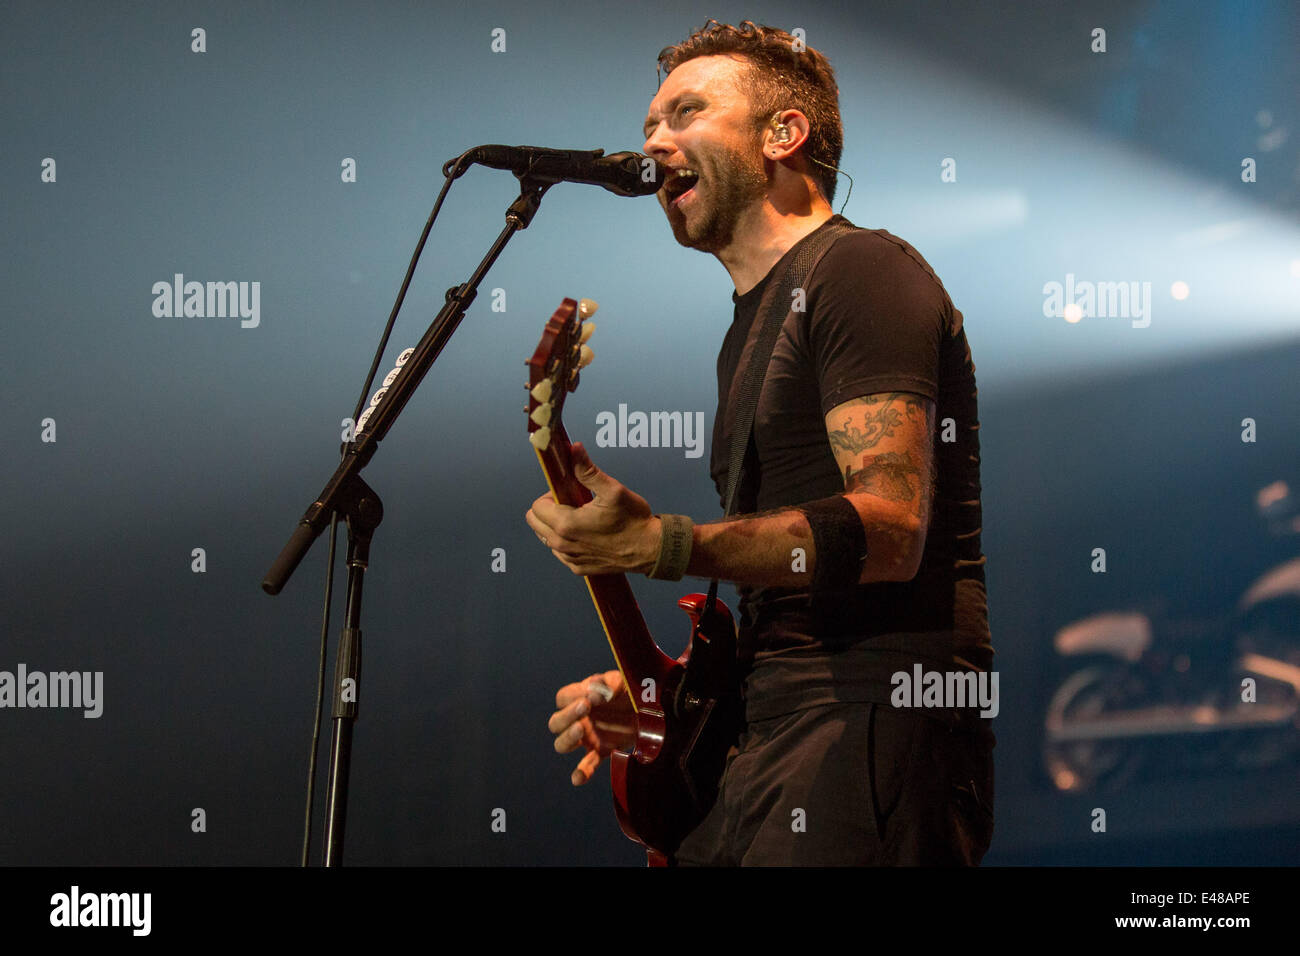 July 3, 2014 - Milwaukee, Wisconsin, U.S - Vocalist TIM MCILRATH of the band Rise Against performs live at the 2014 - Stock Image